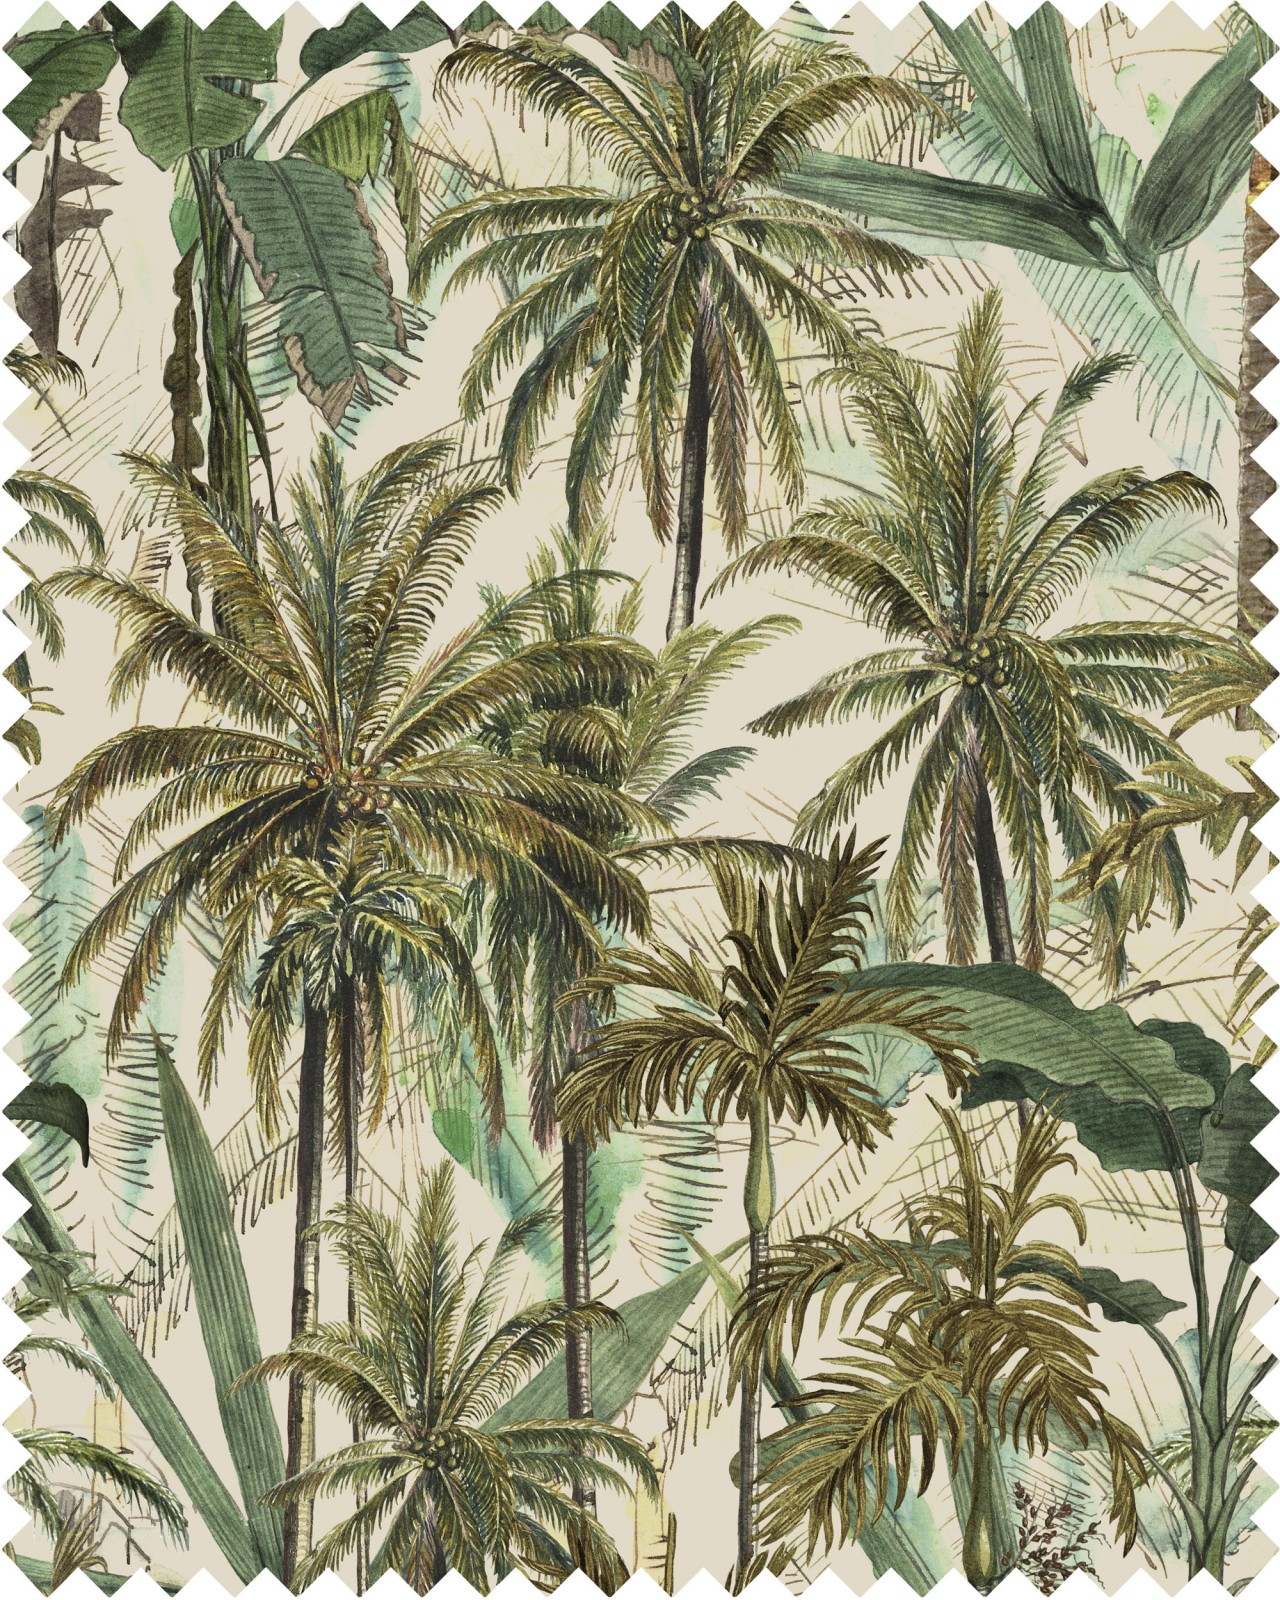 THE JUNGLE Linen Sample